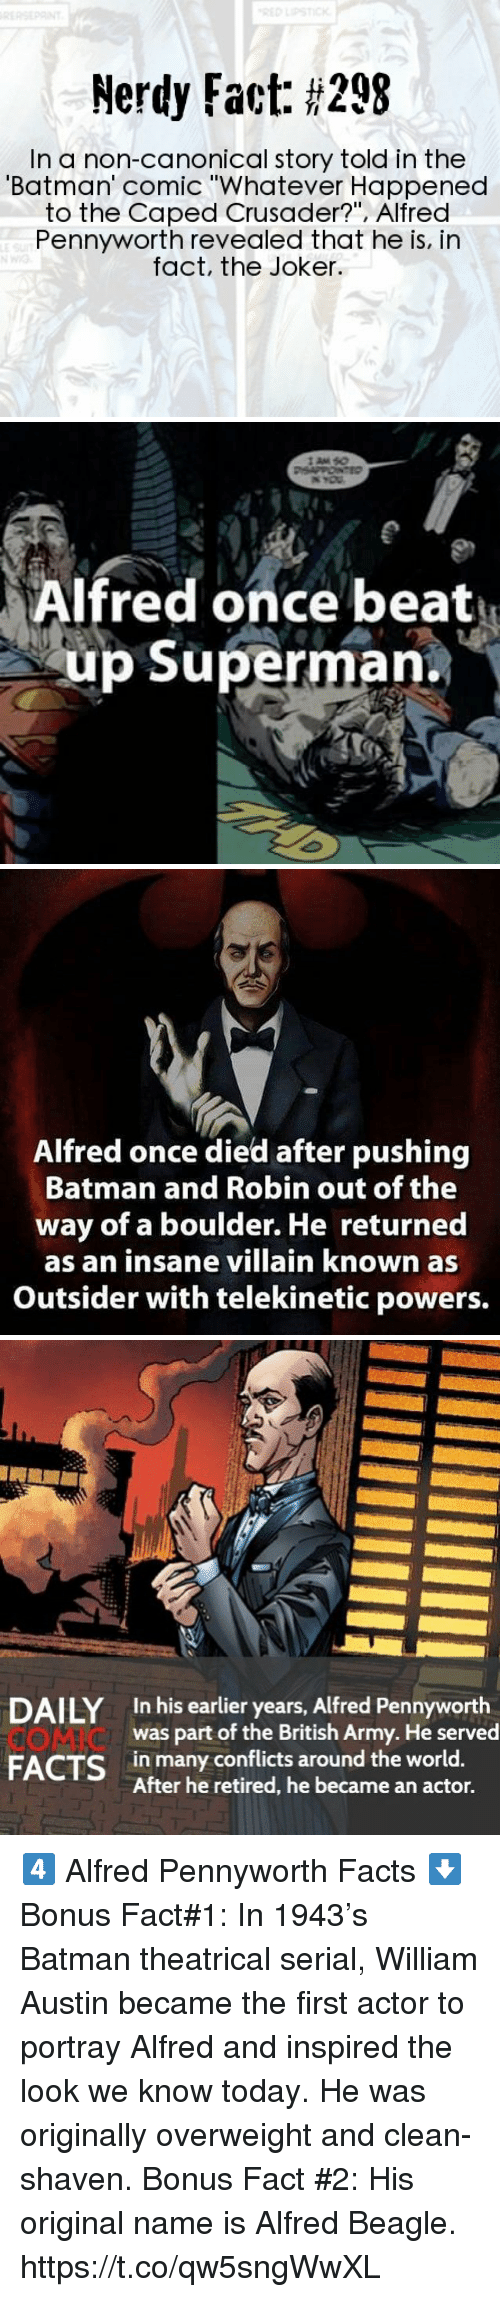 """Batman, Facts, and Joker: Nerdy Fact: #298  In a non-canonical story told in the  Batman' comic """"Whatever Happened  to the Caped Crusader?"""", Alfred  Pennyworth revealed that he is, in  fact, the Joker   Alfred once beat  up Superman.   Alfred once died after pushing  Batman and Robin out of the  way of a boulder. He returned  as an insane villain known as  Outsider with telekinetic powers.   DAILY In his earlier years, Alfred Pennyworth  COMIC  FACTS in many conflits around the world.  was part of the British Army. He served  After he retired, he became an actor. 4️⃣ Alfred Pennyworth Facts ⬇️  Bonus Fact#1: In 1943's Batman theatrical serial, William Austin became the first actor to portray Alfred and inspired the look we know today. He was originally overweight and clean-shaven.  Bonus Fact #2: His original name is Alfred Beagle. https://t.co/qw5sngWwXL"""